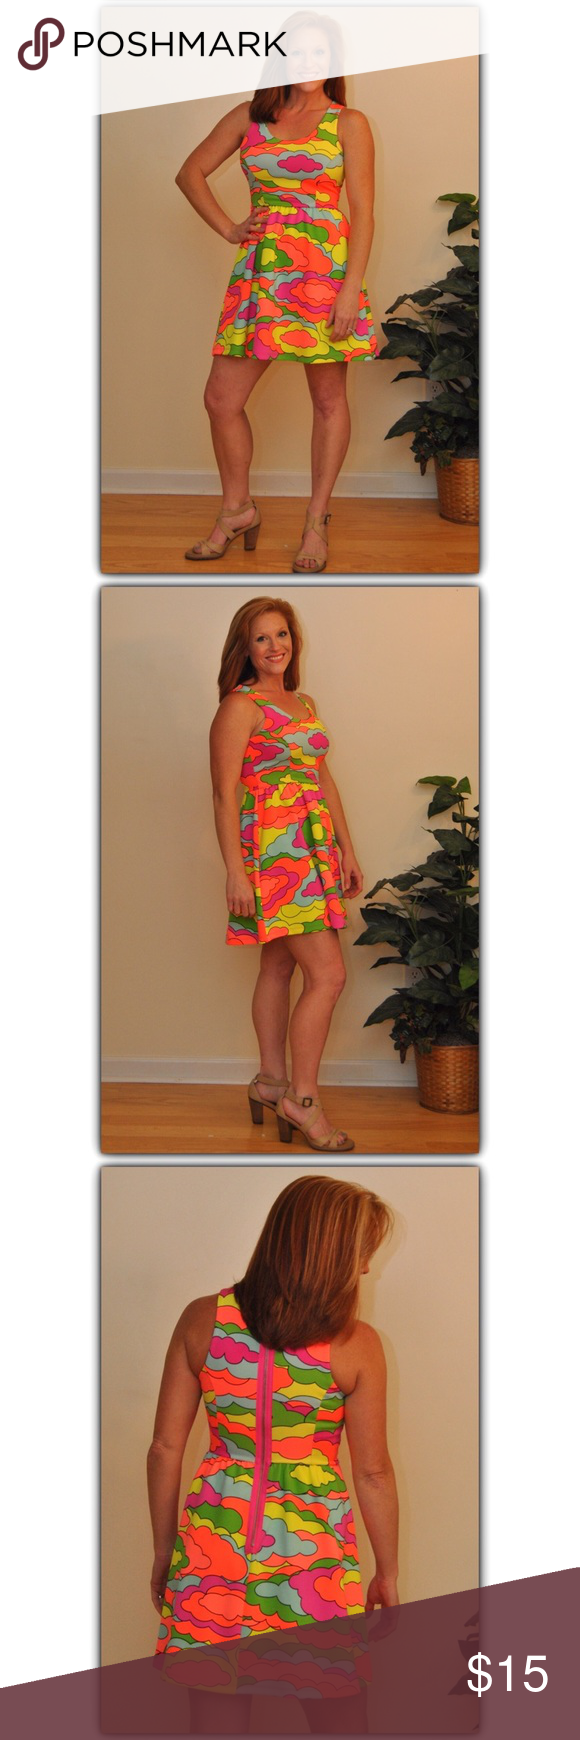 """PRICE ⤵️‼️Head Turning Fit & Flair Dress! This Fantastic Nanette Lepore Colorful Neon Dress features a Hot pink zipper showing in the back! Measures: Total Length 31"""", Under arms laying flat 15.5"""", Shoulder to waist 15"""", Waist to hem 17.5""""....Fabric of this dress is Made of 93% Polyester 7% Spandex. My measurements in pics are Bust 36"""" Waist 27"""". This Darling dress is in Perfect Condition!! Nanette Lepore Dresses Mini"""